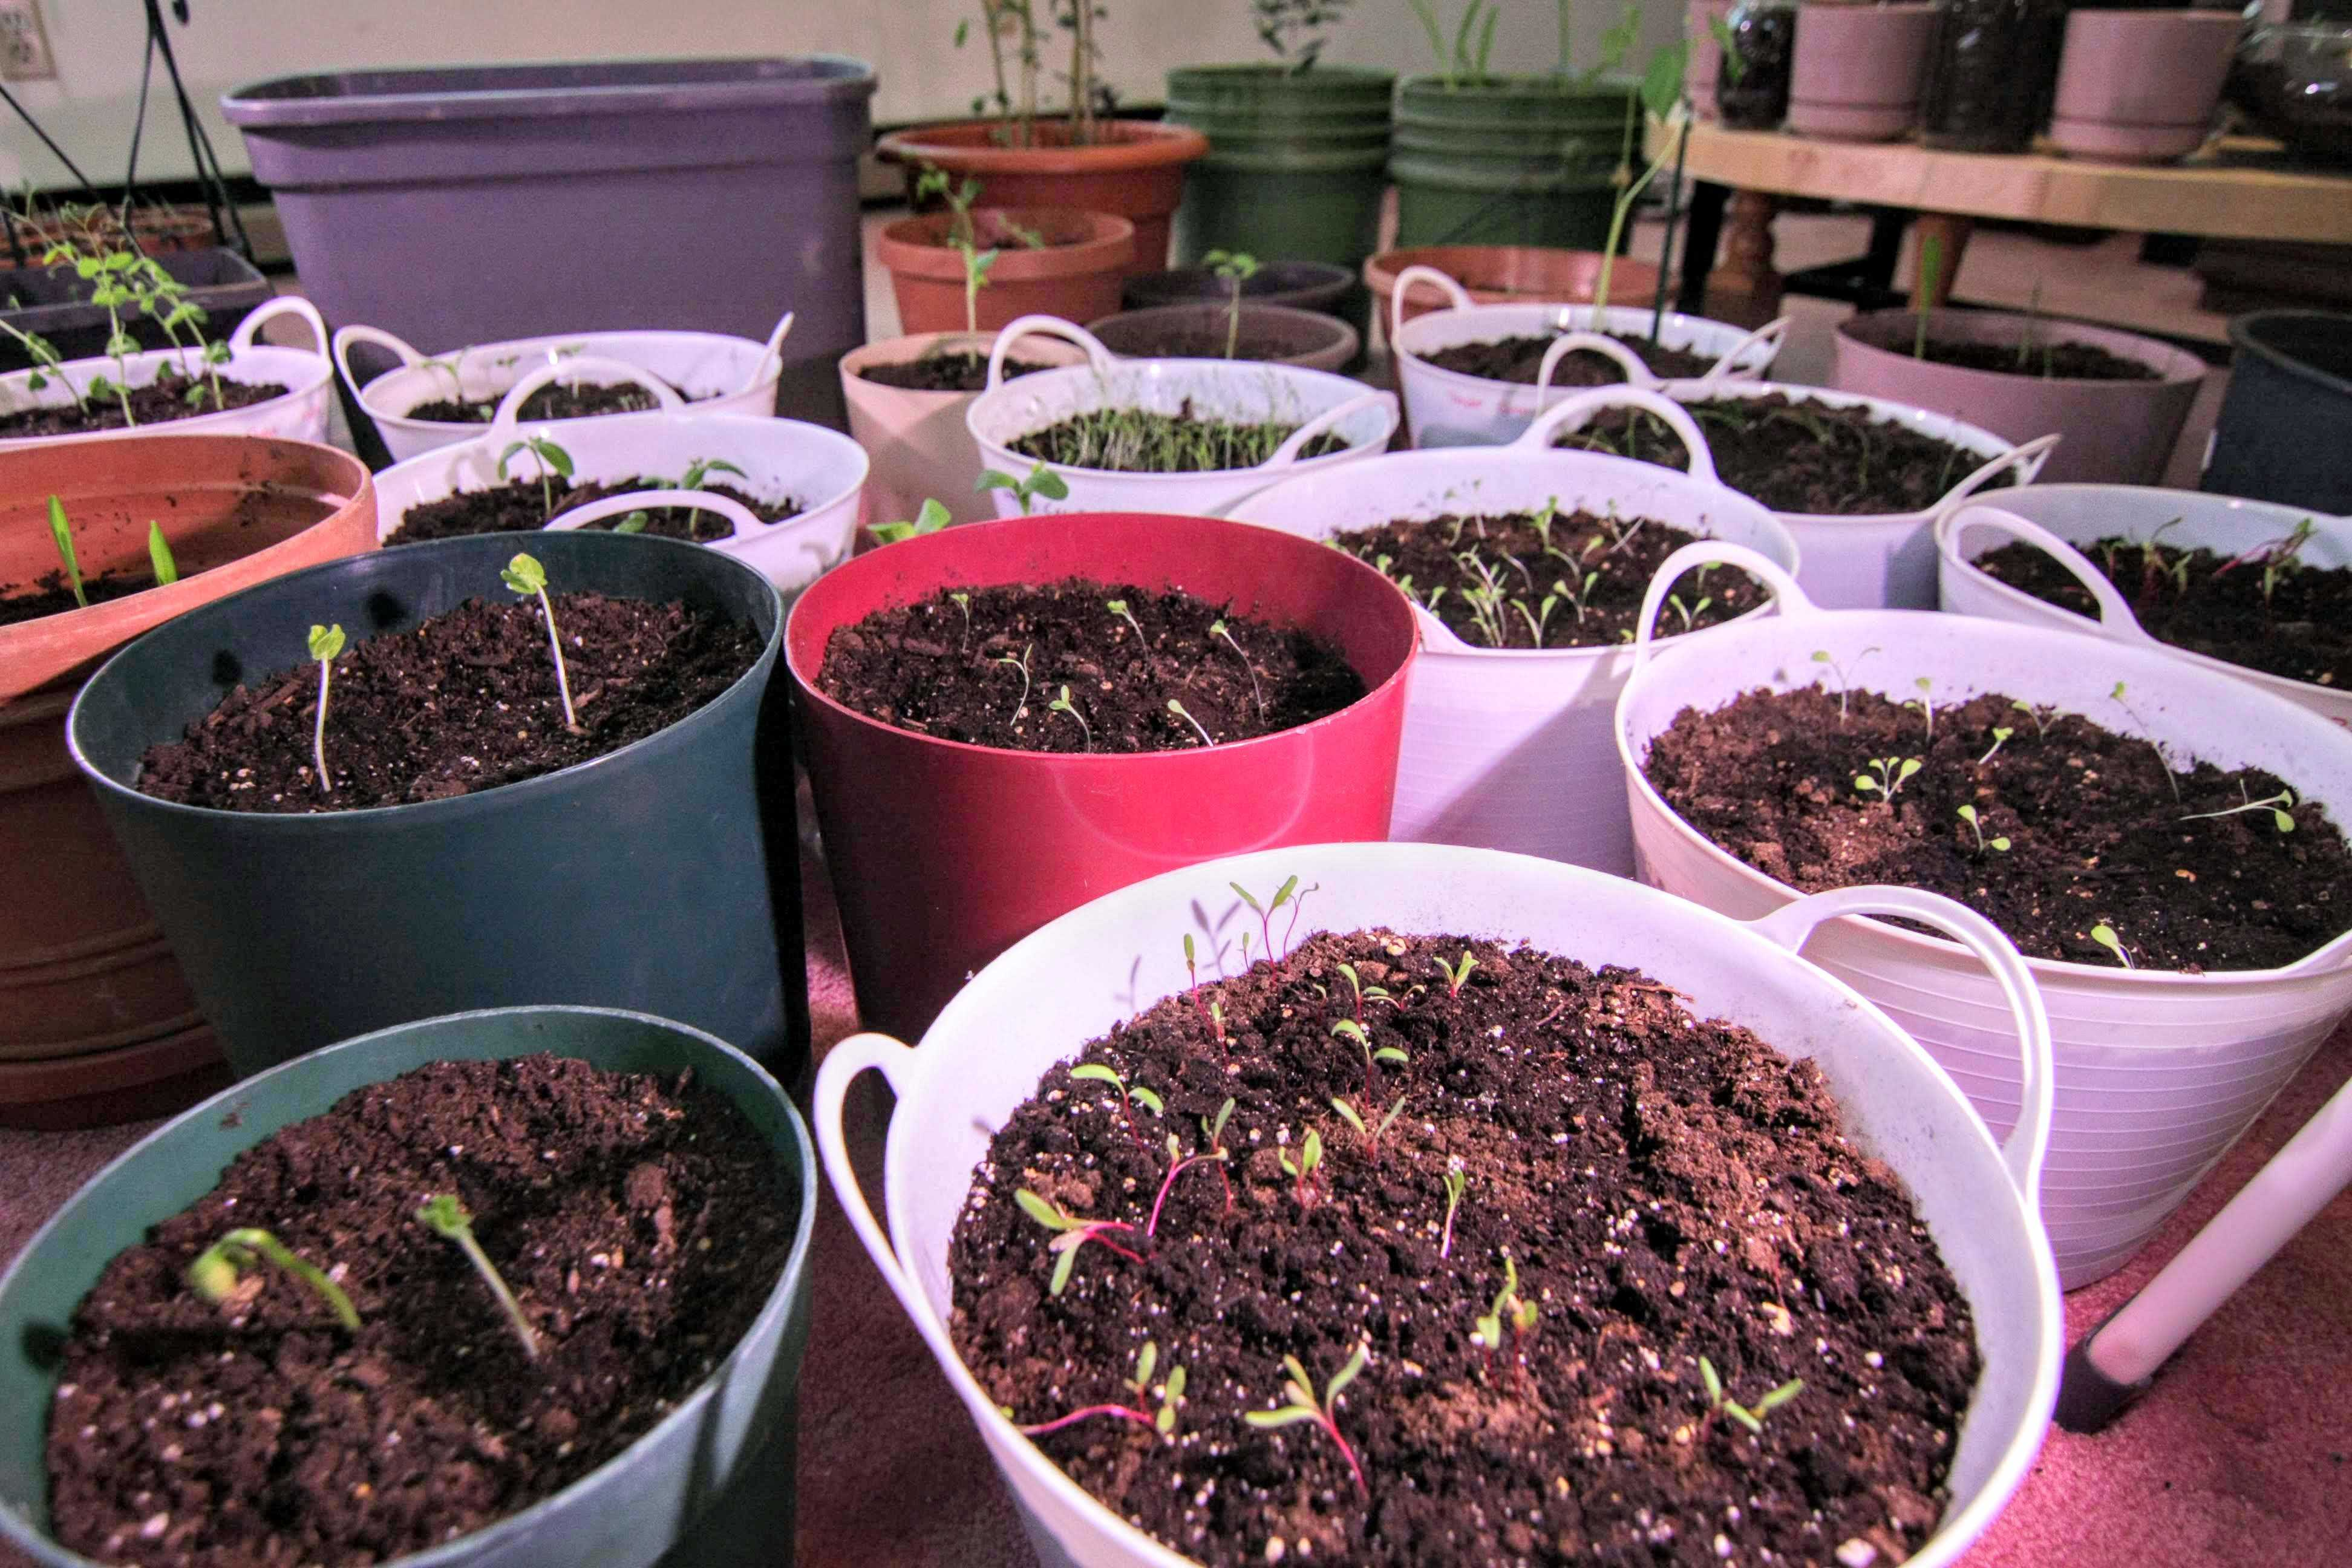 You Can Grow These Plants Quickly During Your Coronavirus Quarantine